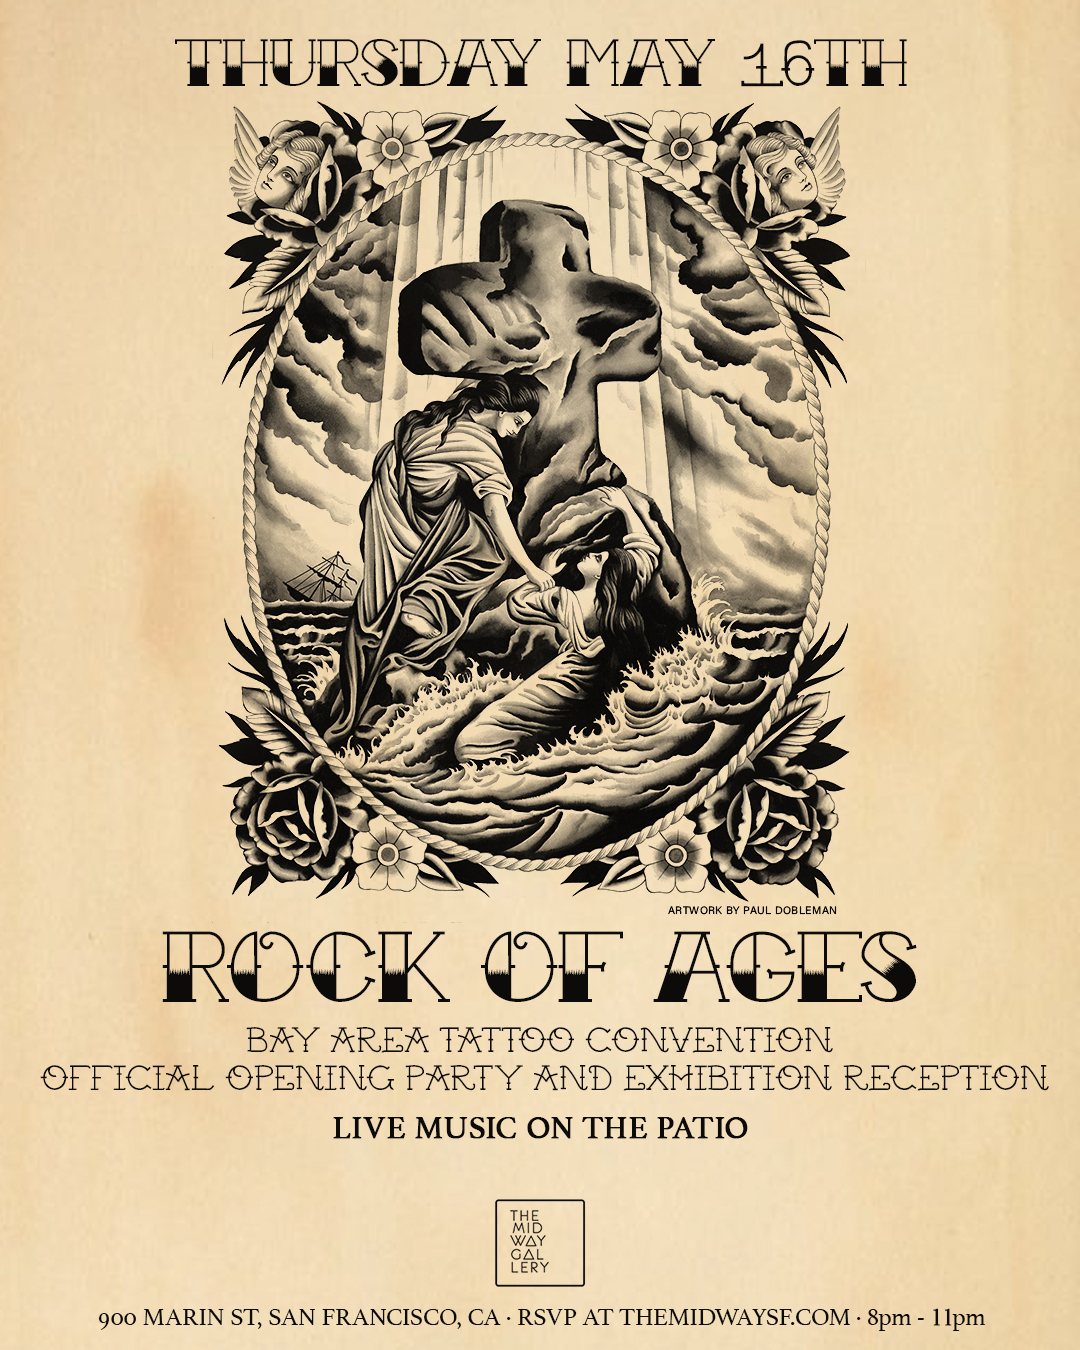 Rock of Ages - May 16 - June, 2019In collaboration with the Bay Area Tattoo Convention and some of the Bay's most iconic tattoo shops, the Rock of Ages exhibition focuses on seven major icons in American Traditional Tattooing, their origin stories, early forms and how they've evolved in contemporary tattooing.May 16 Opening Free with RSVP